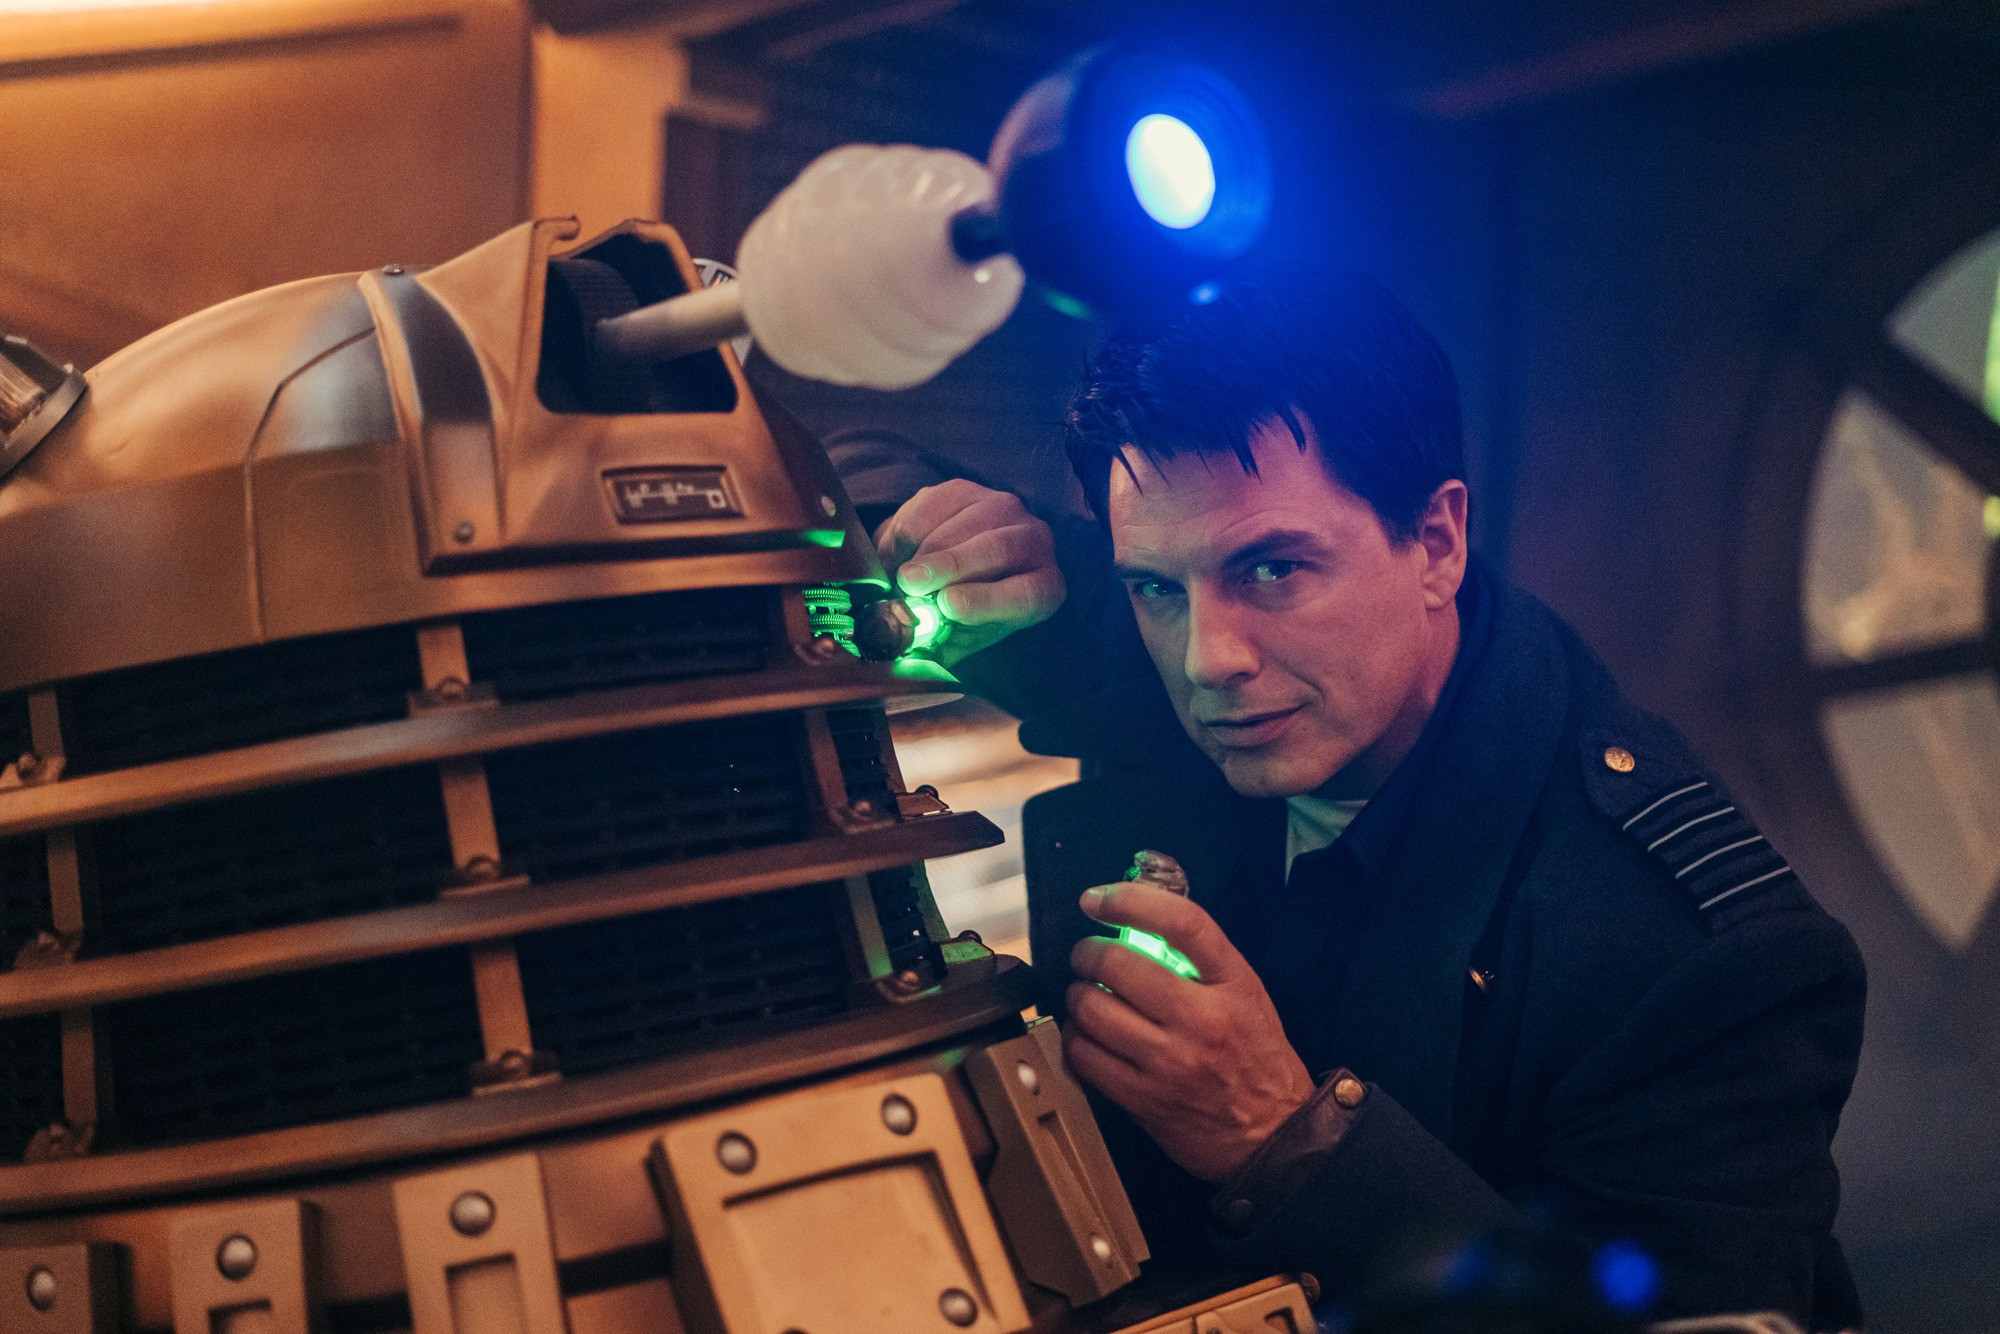 Here's What The Doctor Who Companion Thought of Revolution of the Daleks